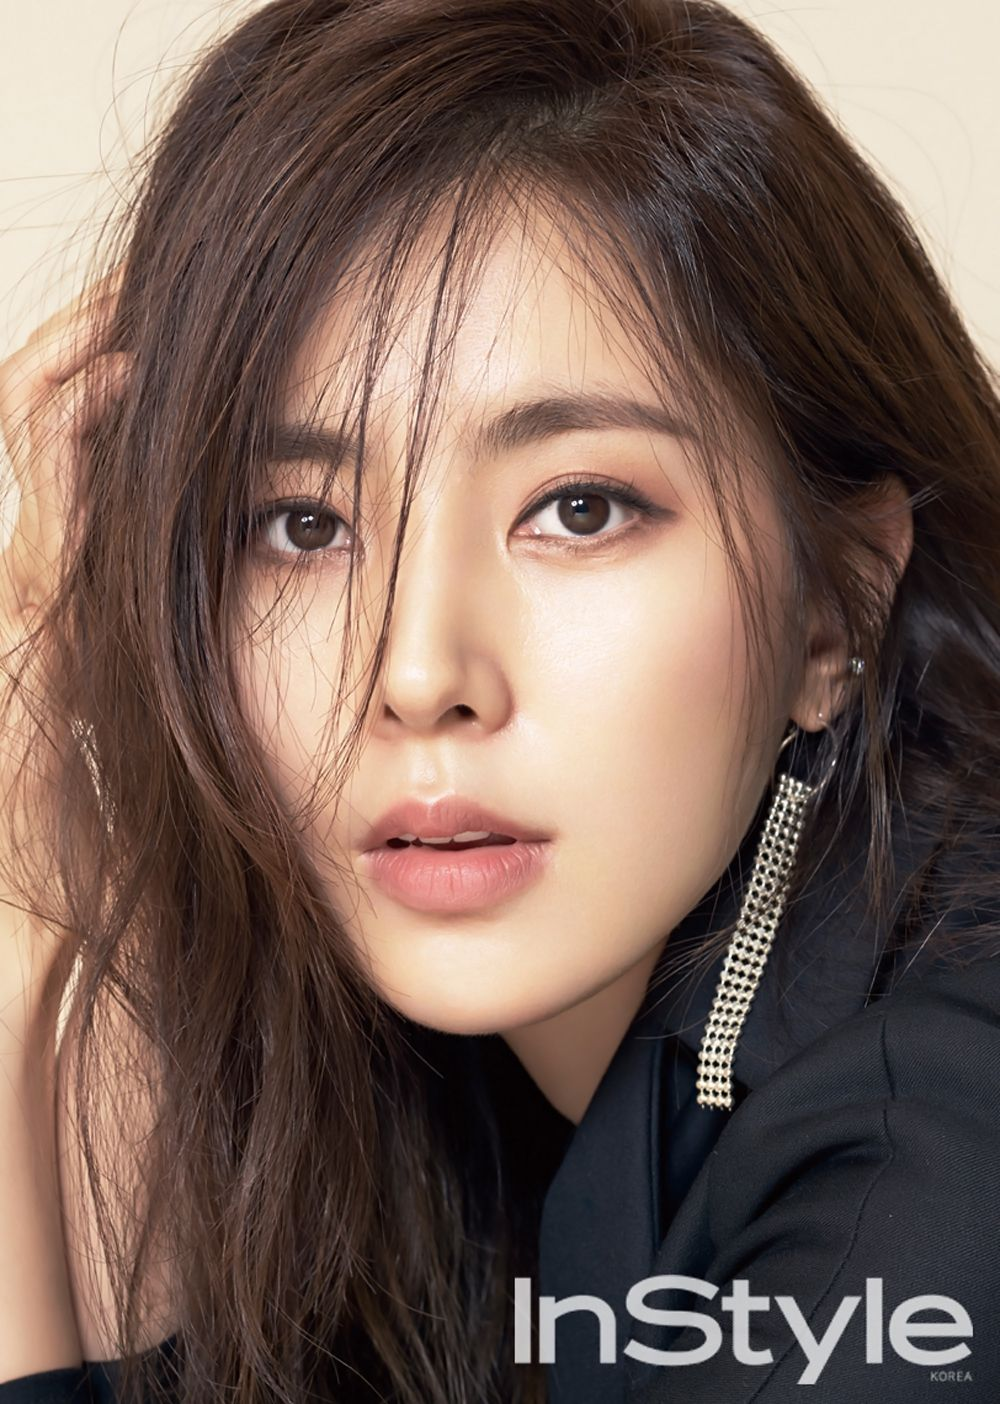 Han Chae Ah Instyle Magazine August Issue 16 Korean Photoshoots Beautiful Face Fashion Pictures Asian Beauty